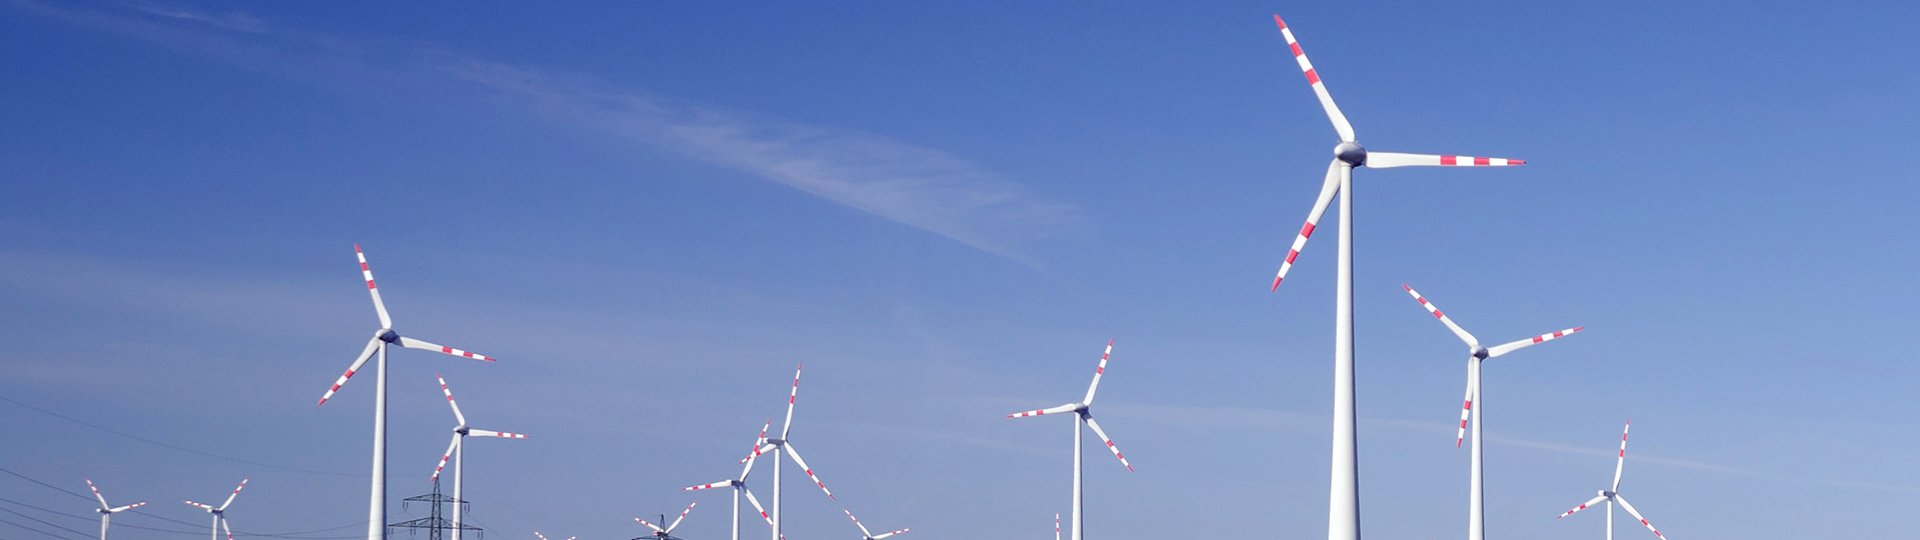 Long shot of several white wind turbines set against a blue sky